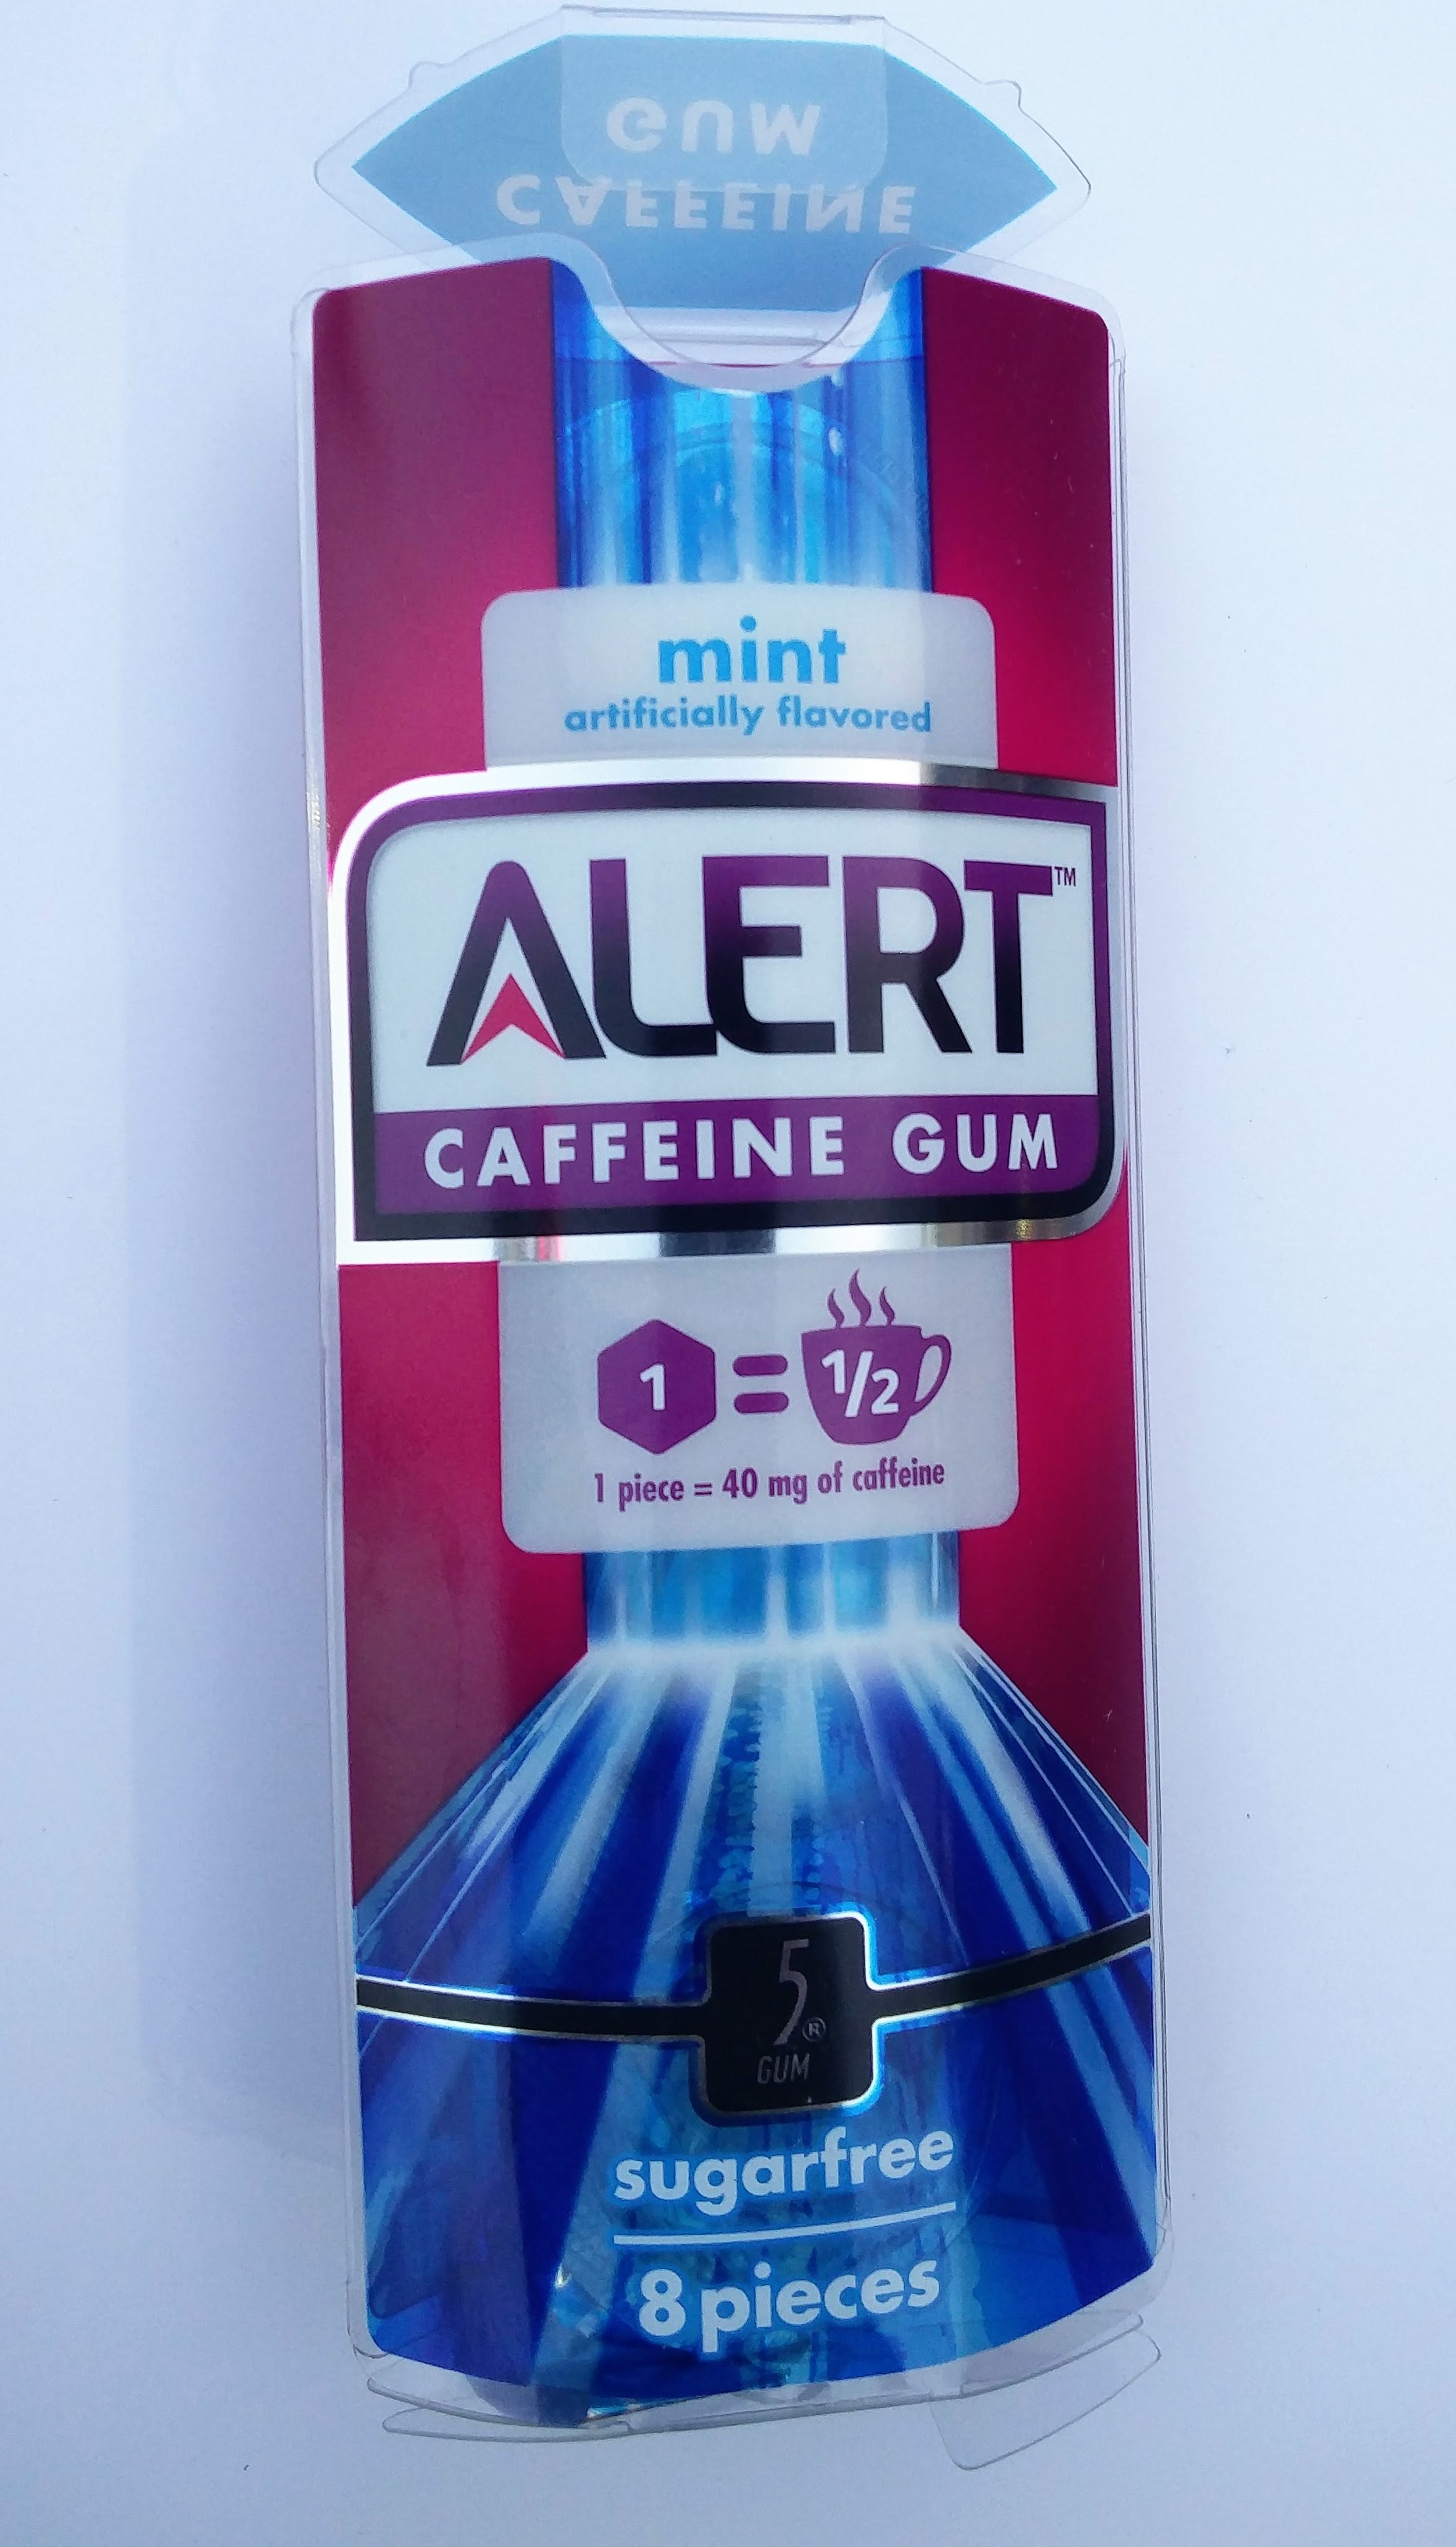 packaging for caffeine gum